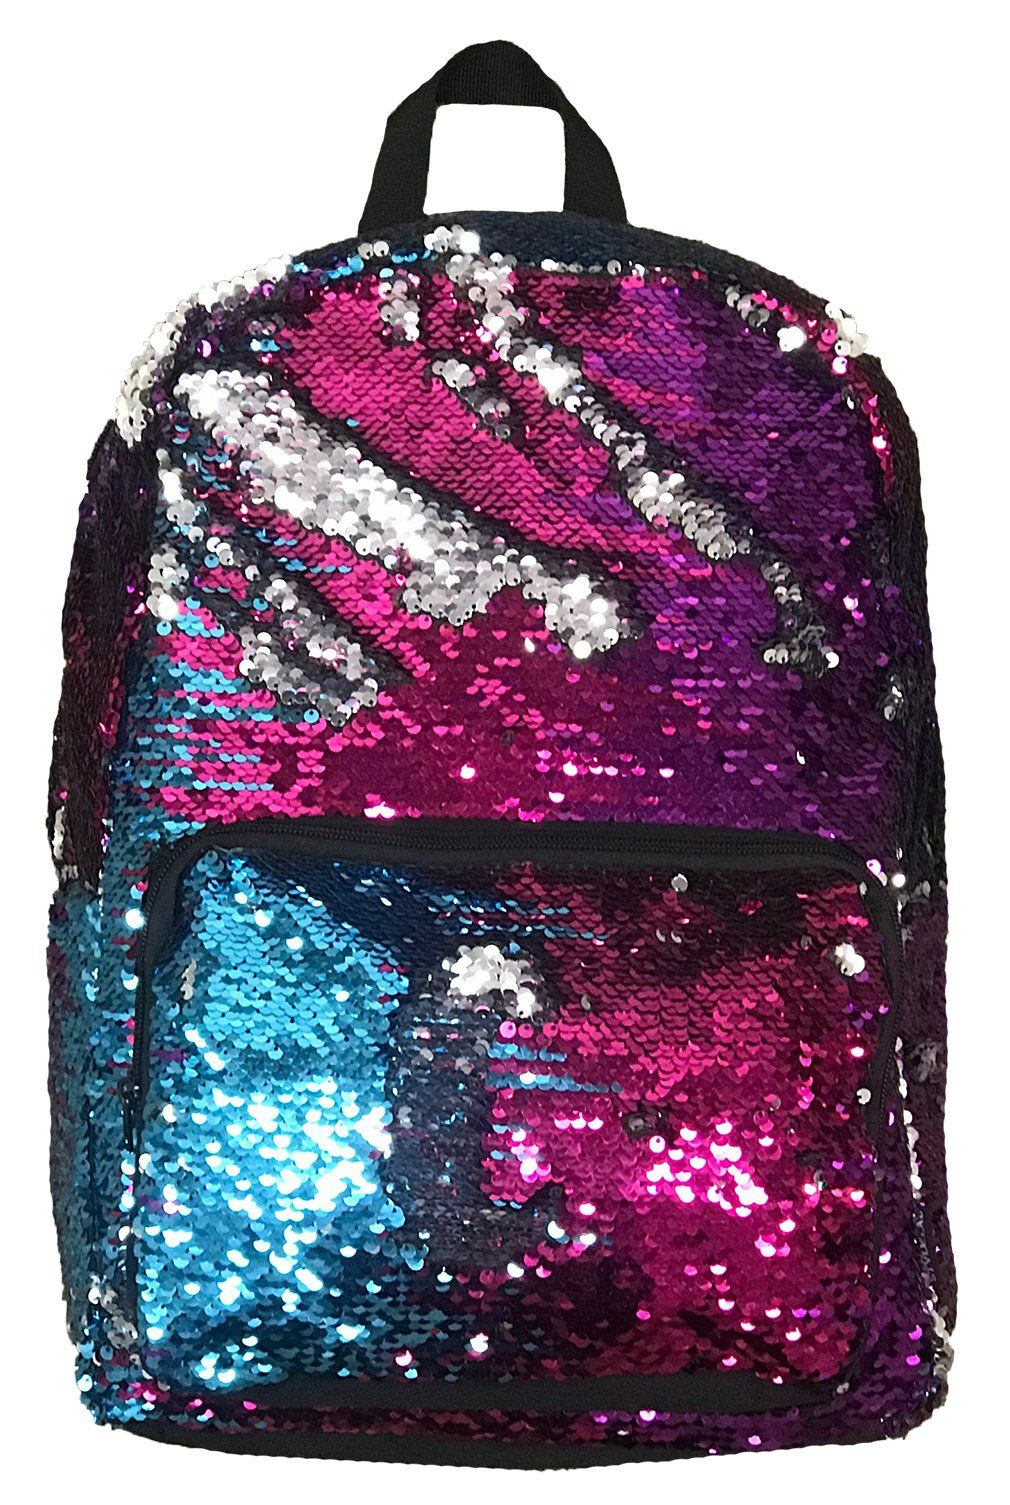 d400d3438c Color Changing Sequin Backpack - Multi-Color Mix in 2019